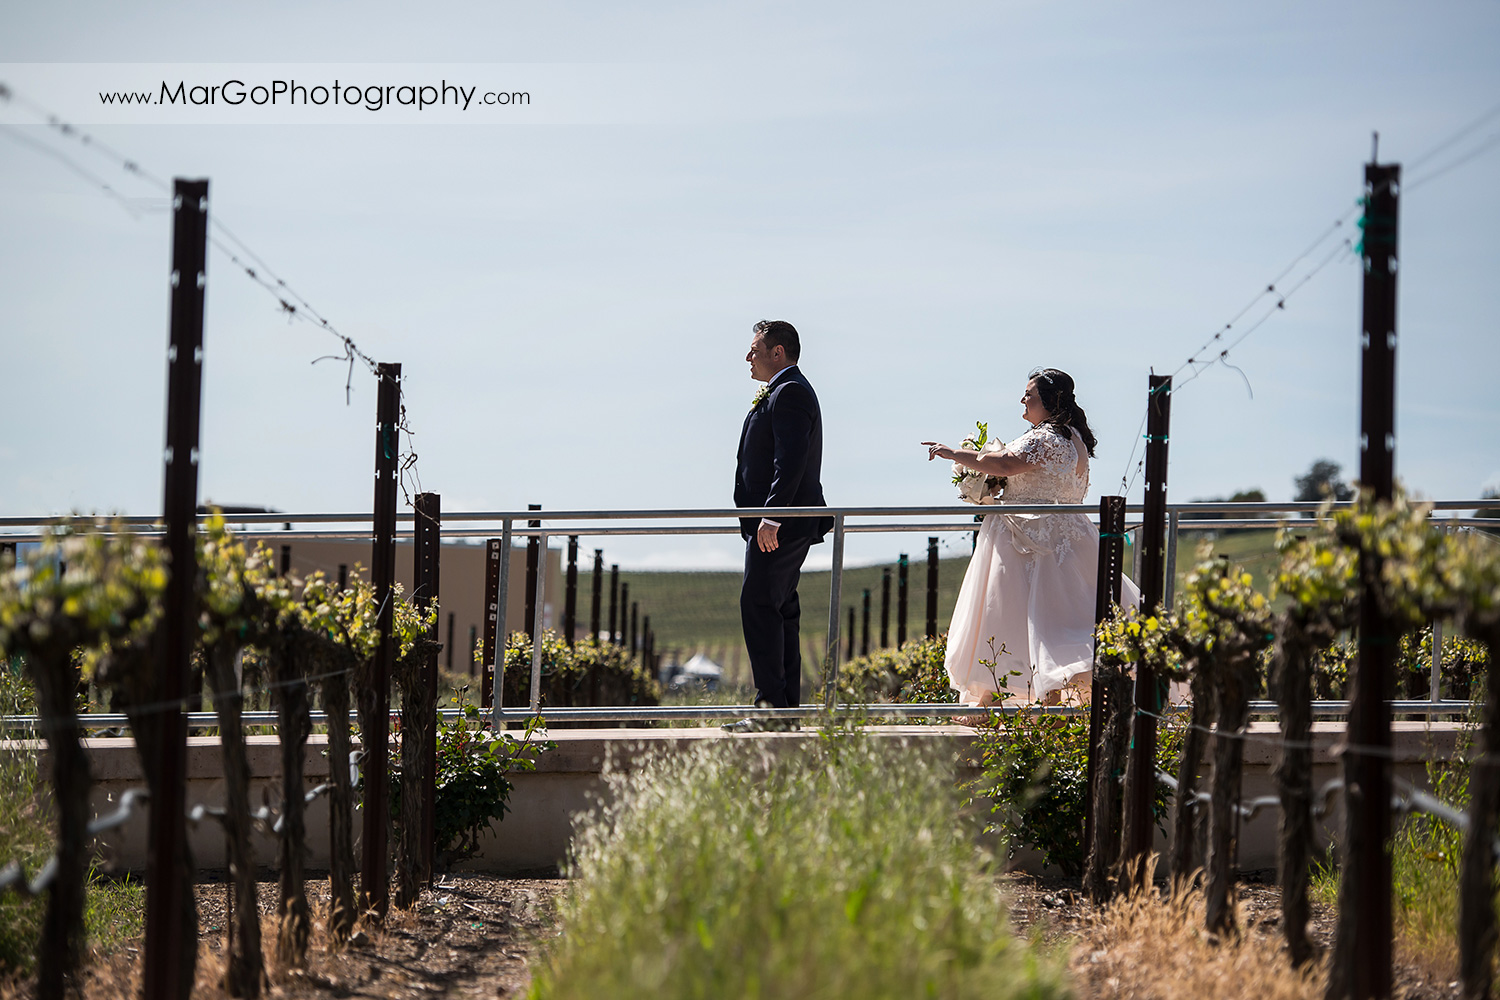 bride approaching groom during first look at Livermore Garre Vineyard and Winery